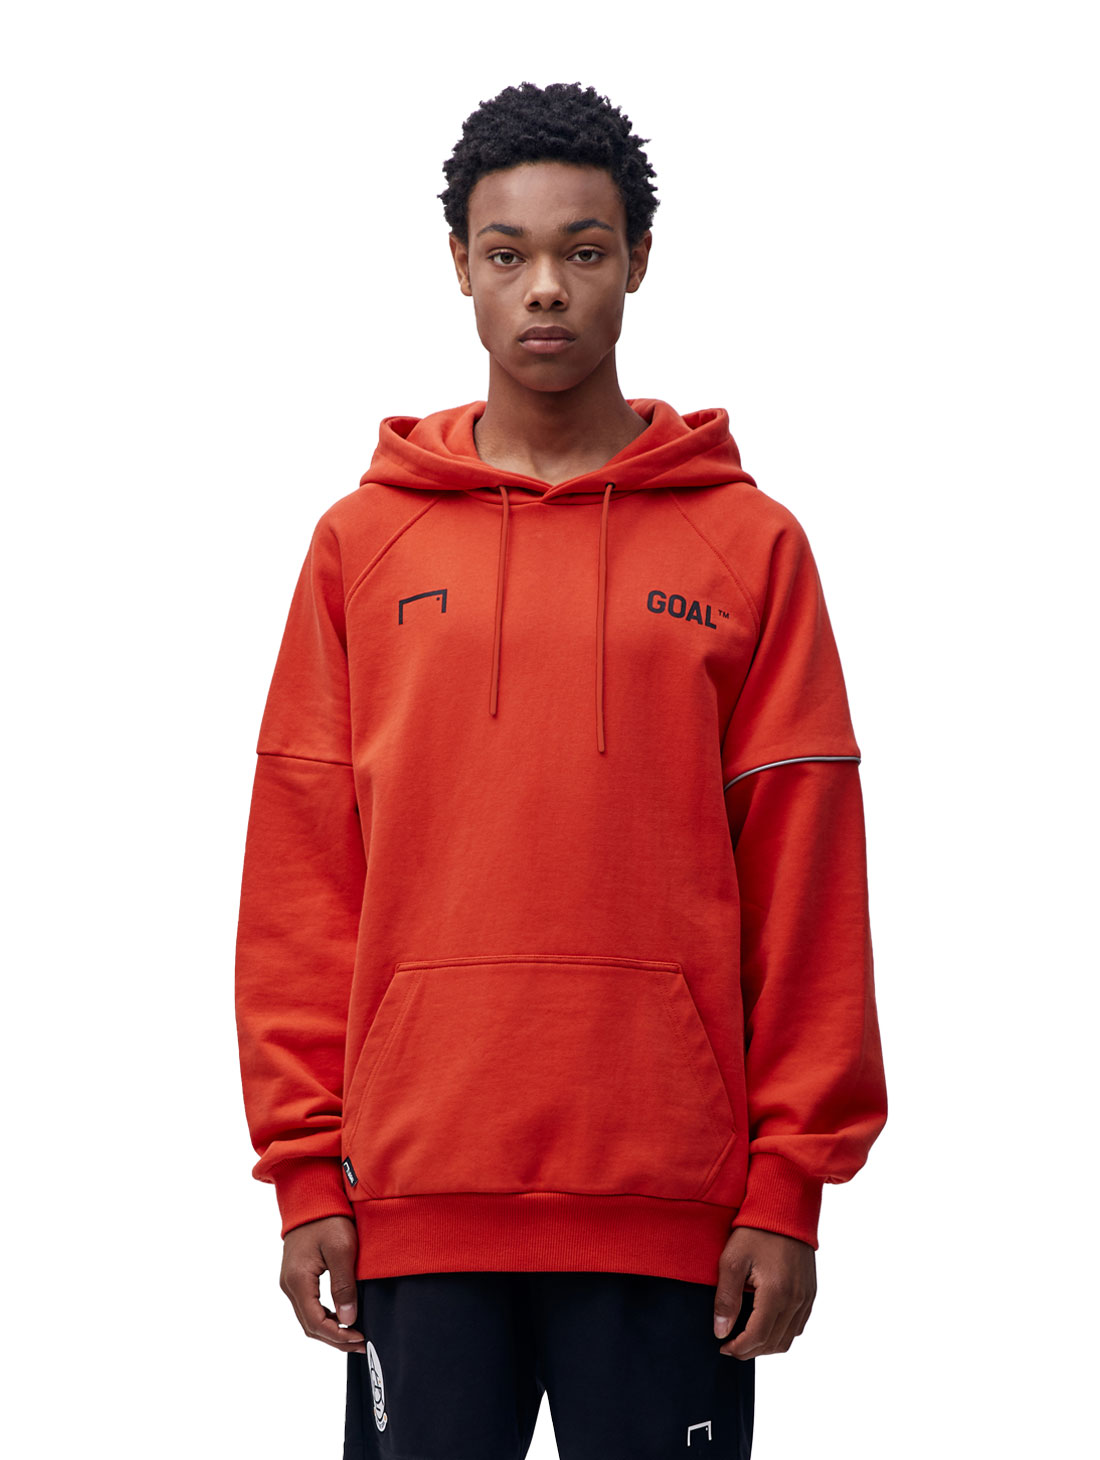 GOALSTUDIO RESPECT HOODIE - ORANGE